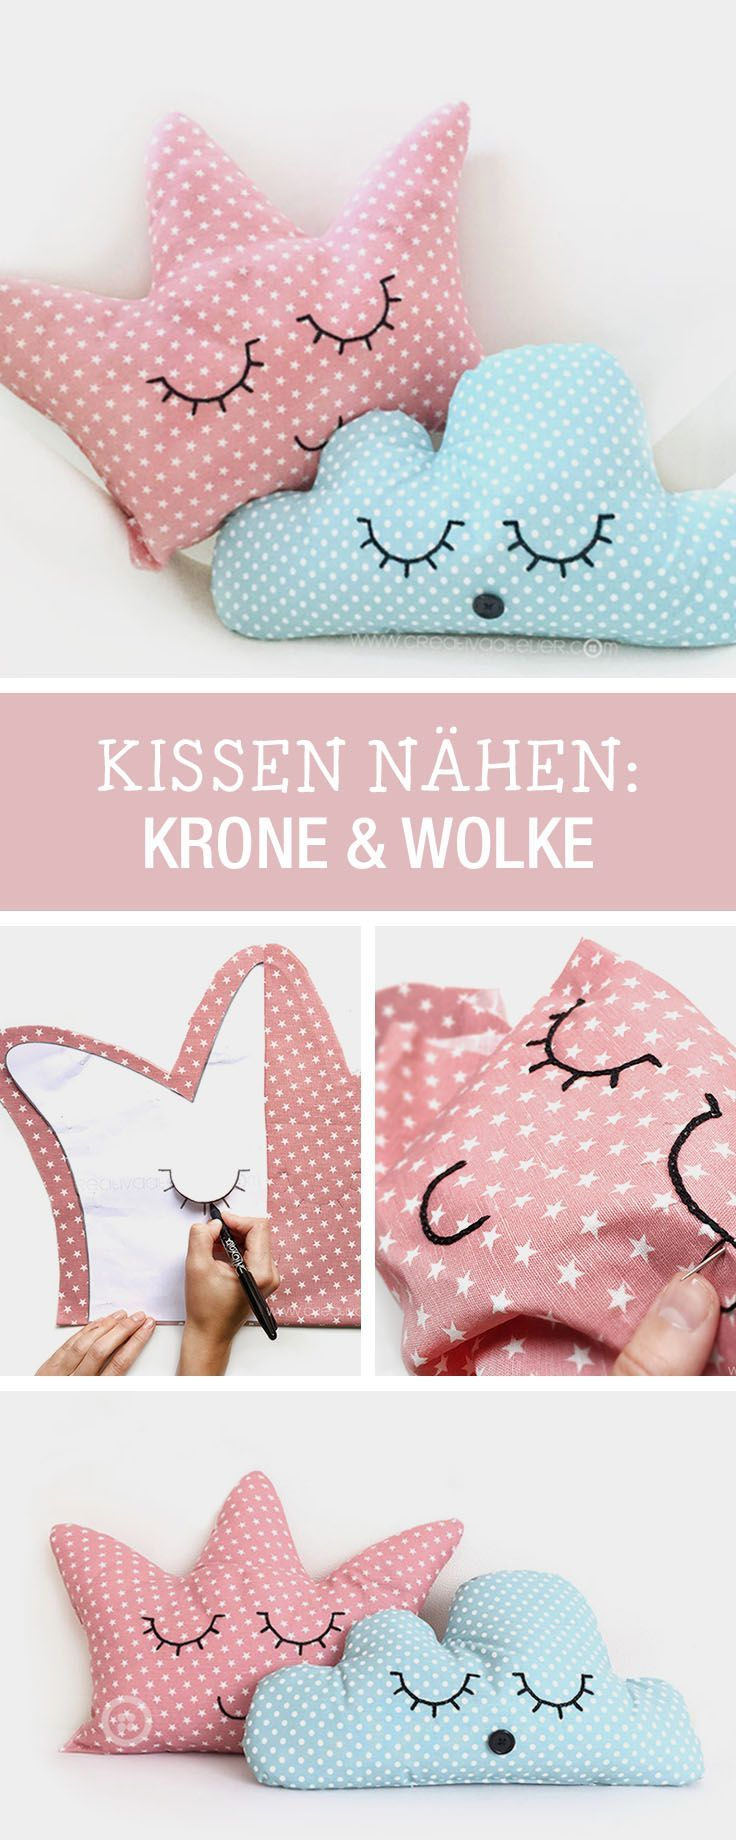 diy anleitung kissen als krone und wolke n hen via kleine prinzessin diy. Black Bedroom Furniture Sets. Home Design Ideas